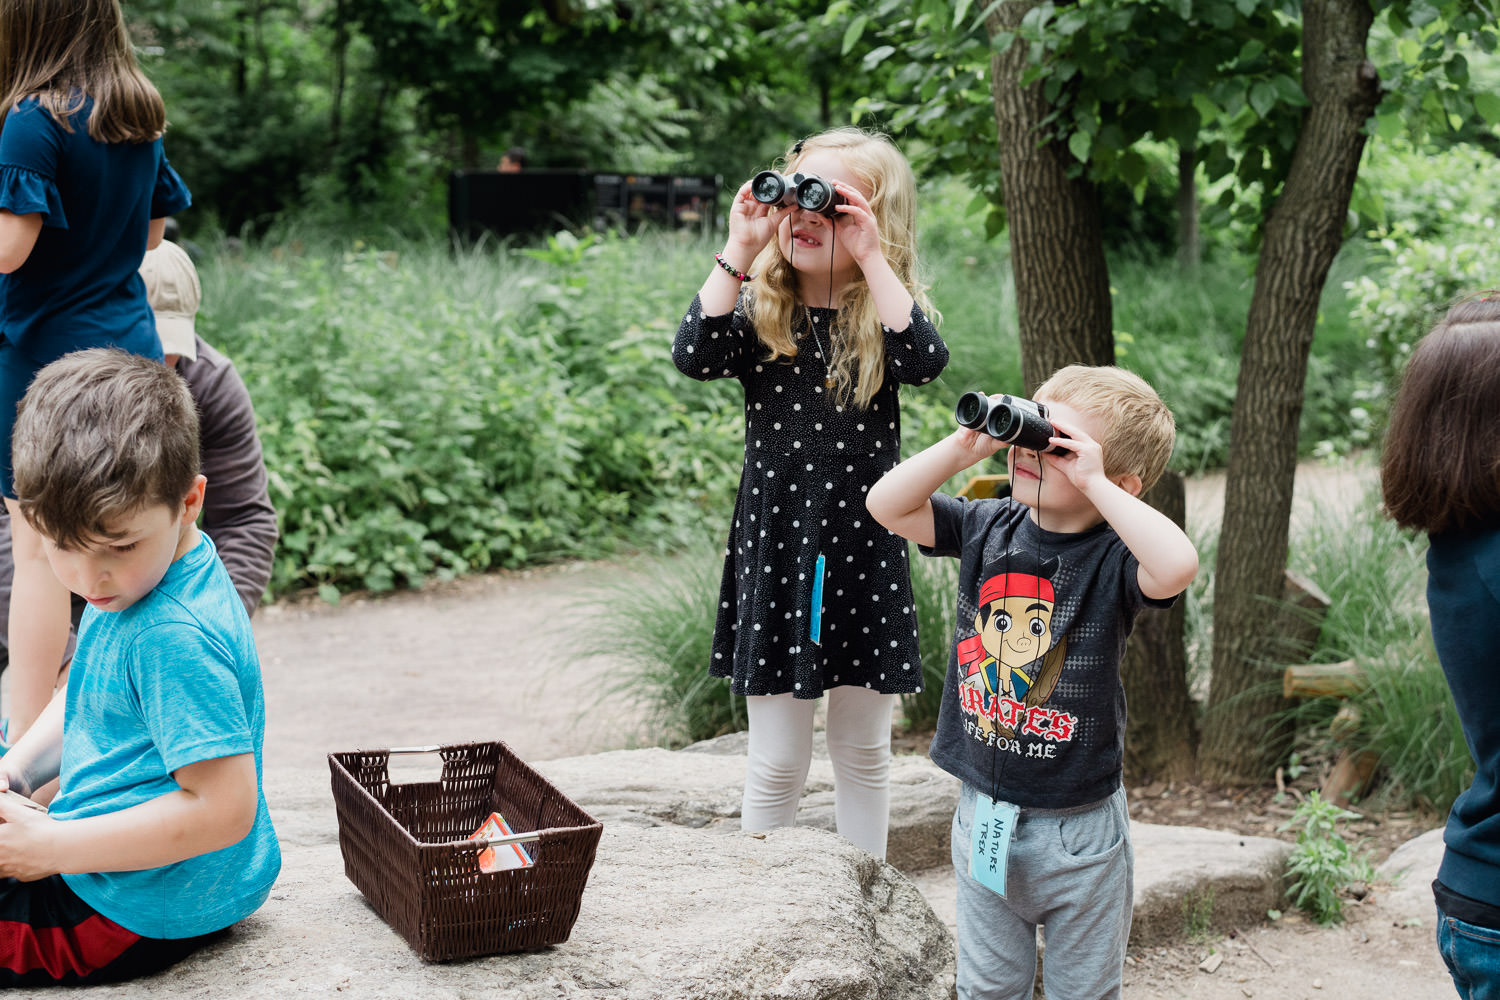 Two young kids look through binoculars at the Nature Trek at the Bronx Zoo.